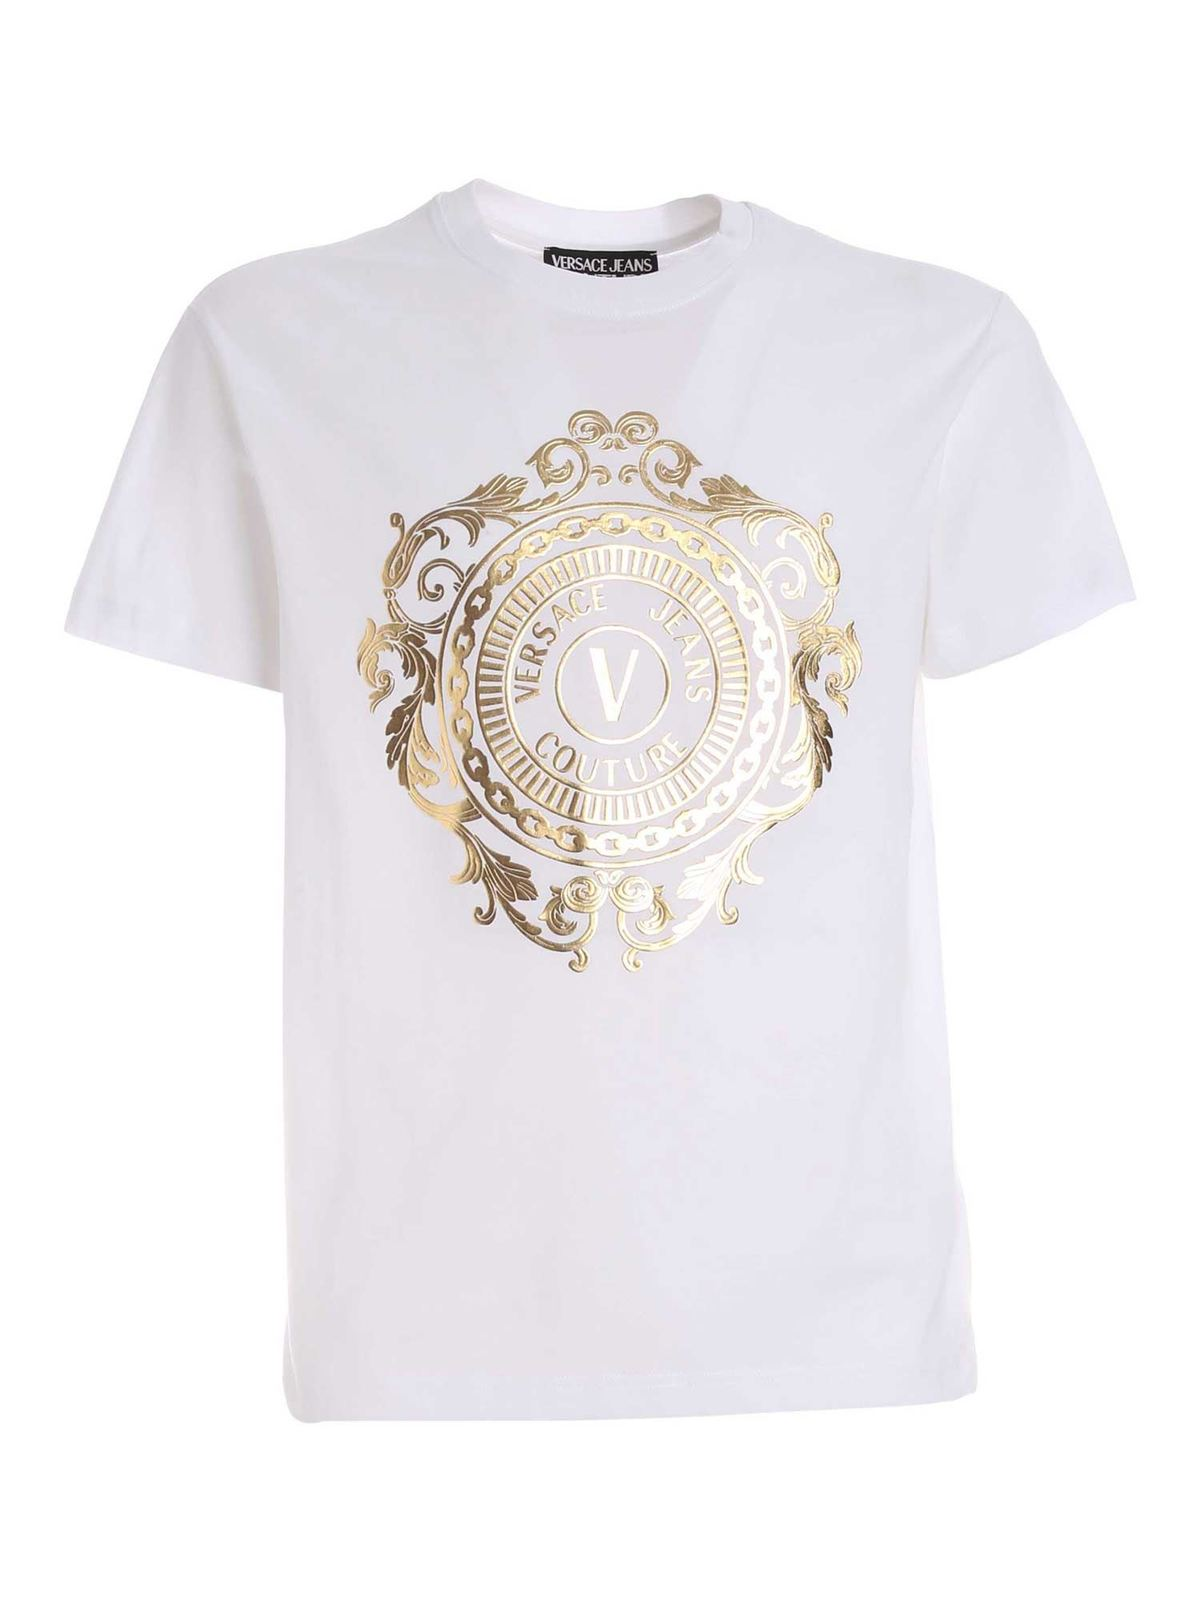 VERSACE JEANS COUTURE RUBBERIZED PRINT T-SHIRT IN WHITE